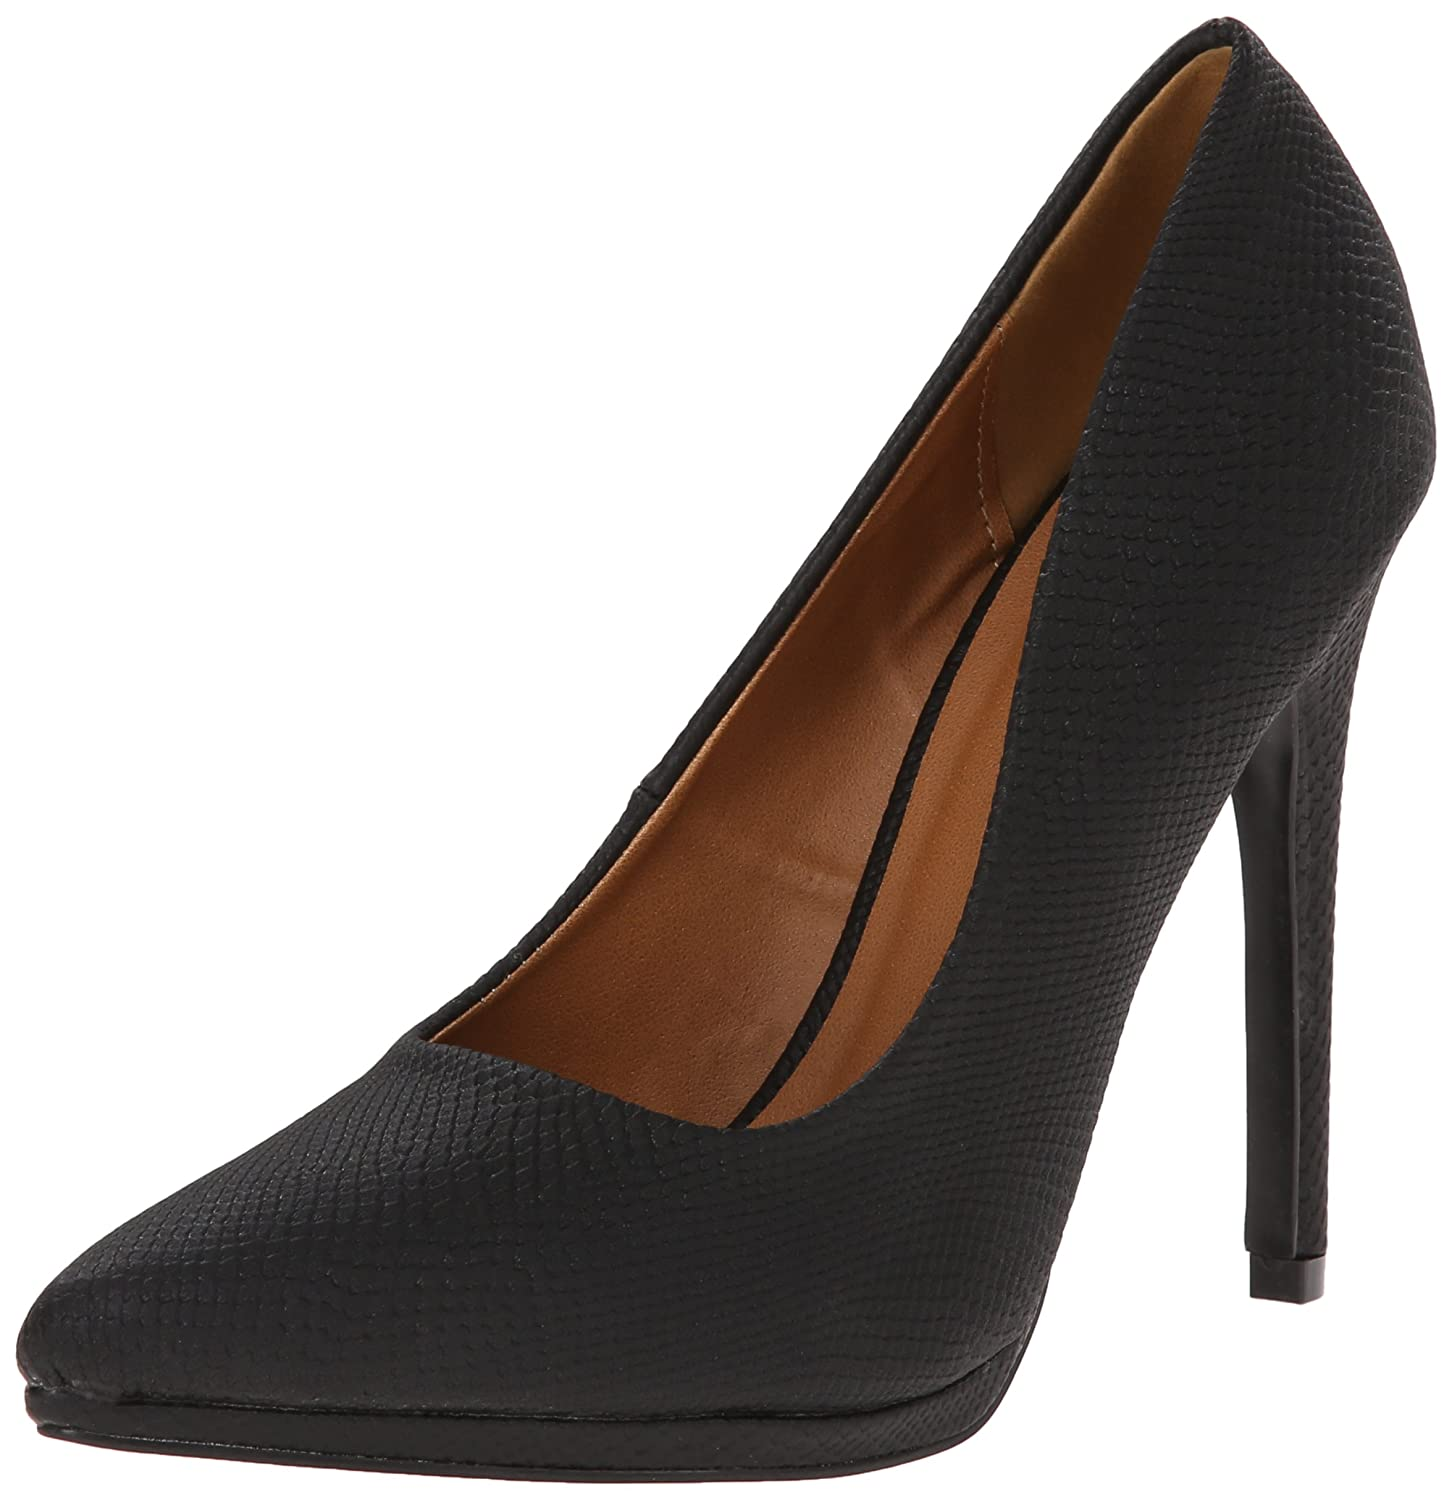 Qupid Women's Virtue-15 Dress Pump B00NIKFXWO 7 B(M) US|Black